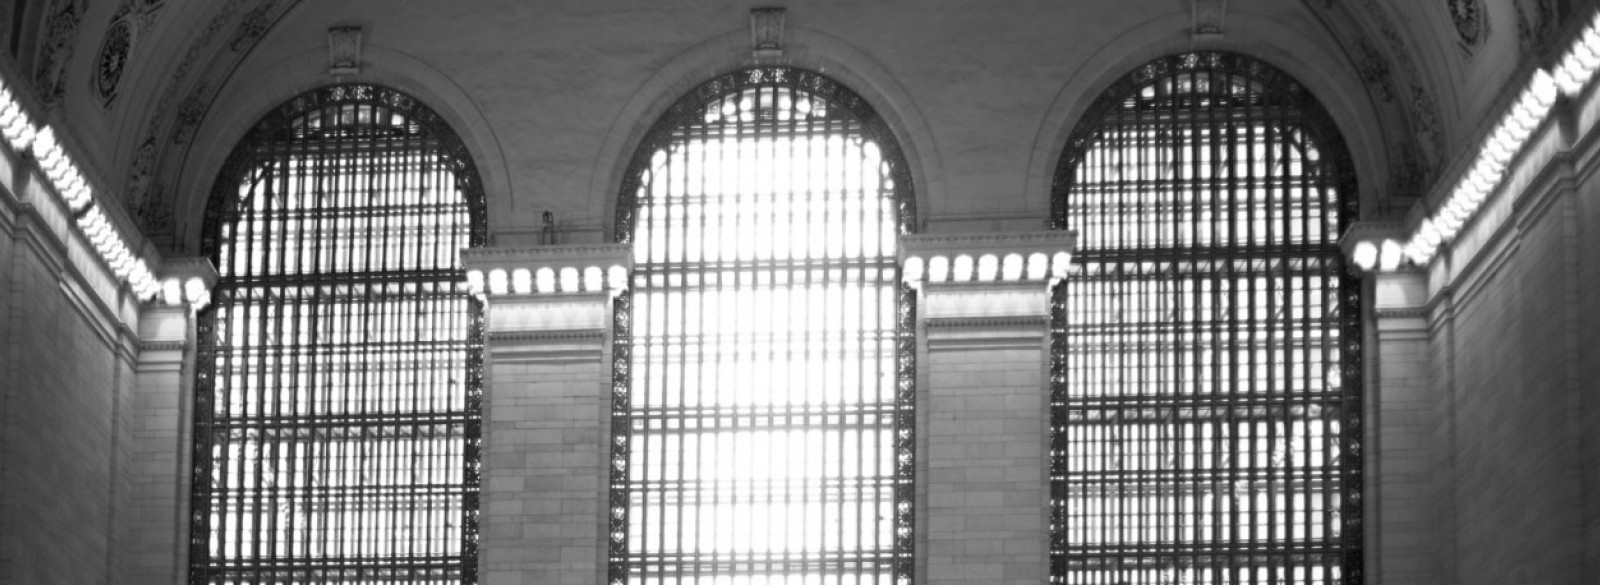 Interior photo of windows in Grand Central Terminal N.Y.C.